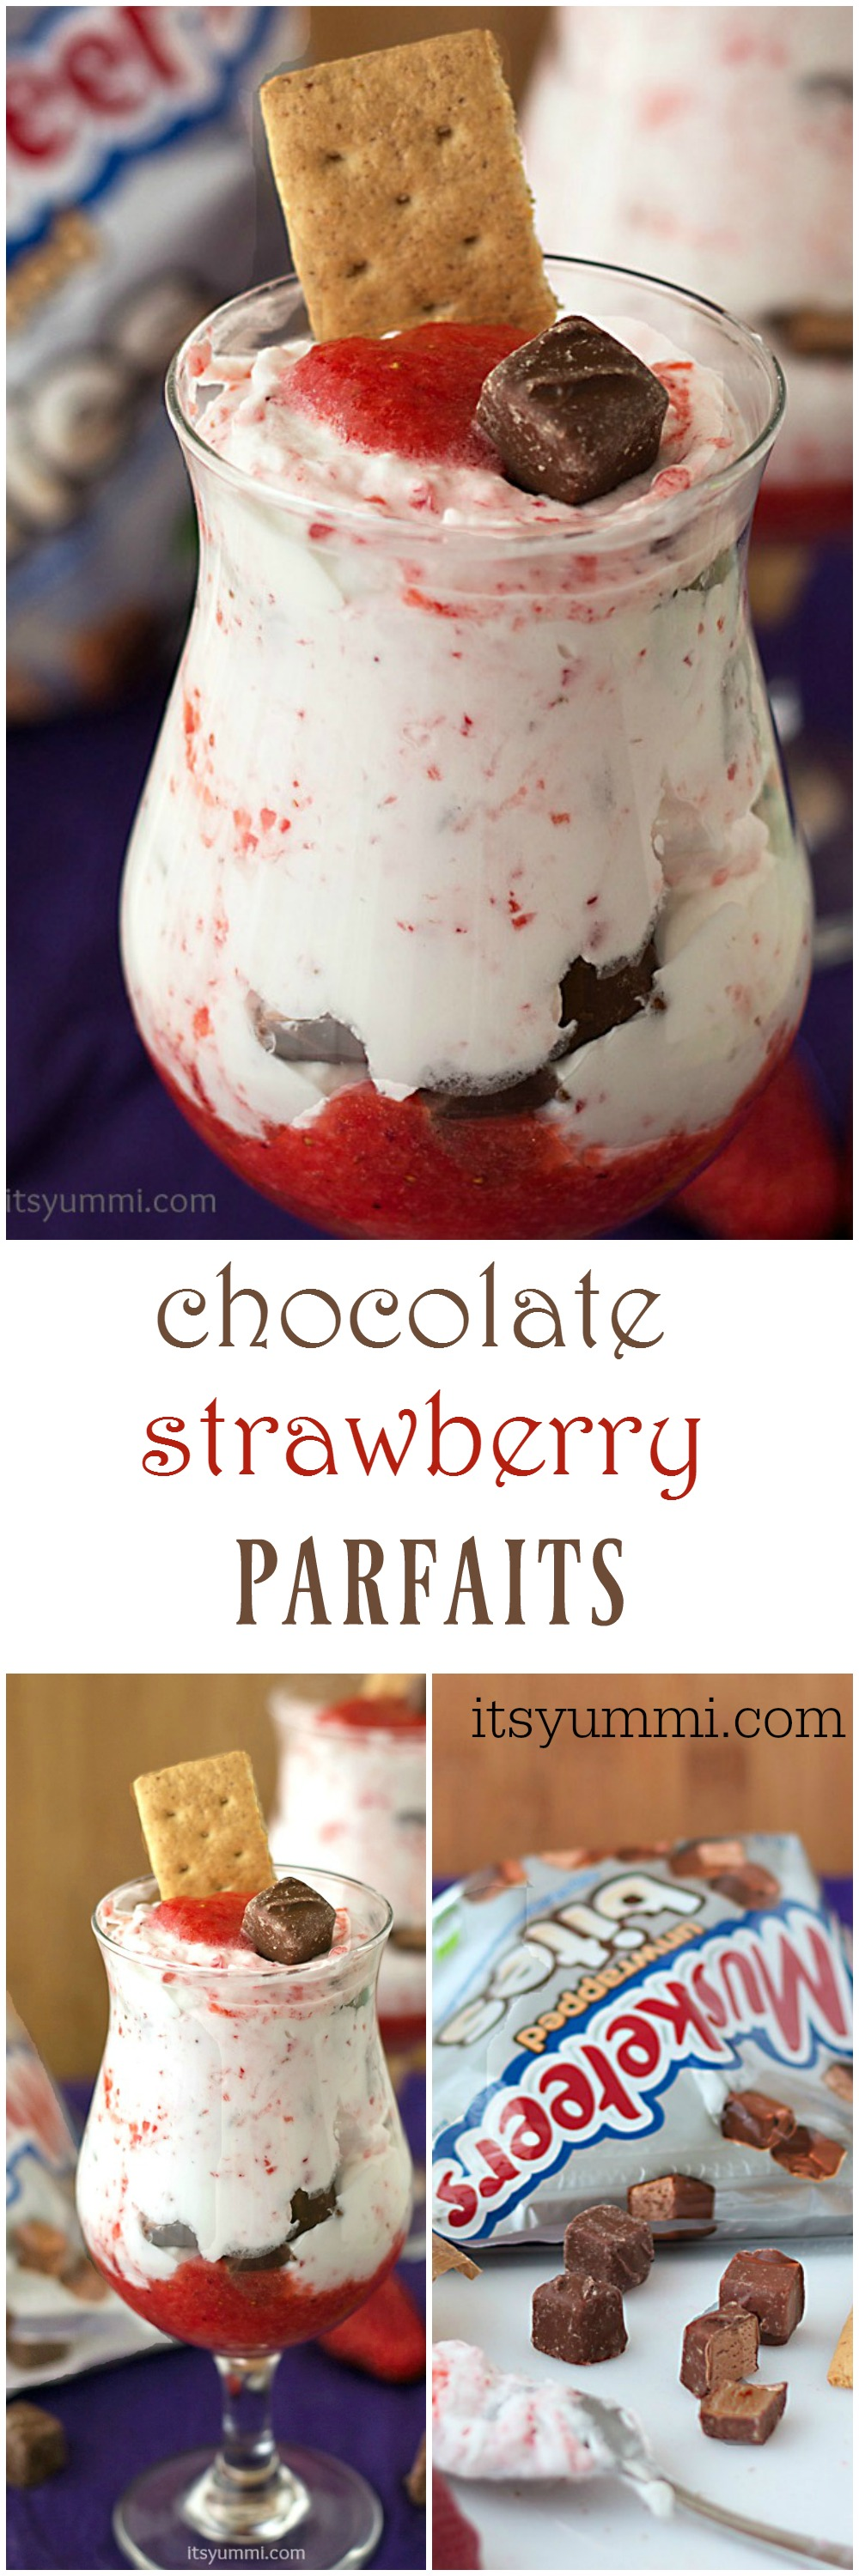 Chocolate Strawberry Candy Bar Parfaits - An easy to make dessert with layers of strawberry fool, homemade whipped cream, and candy bars.